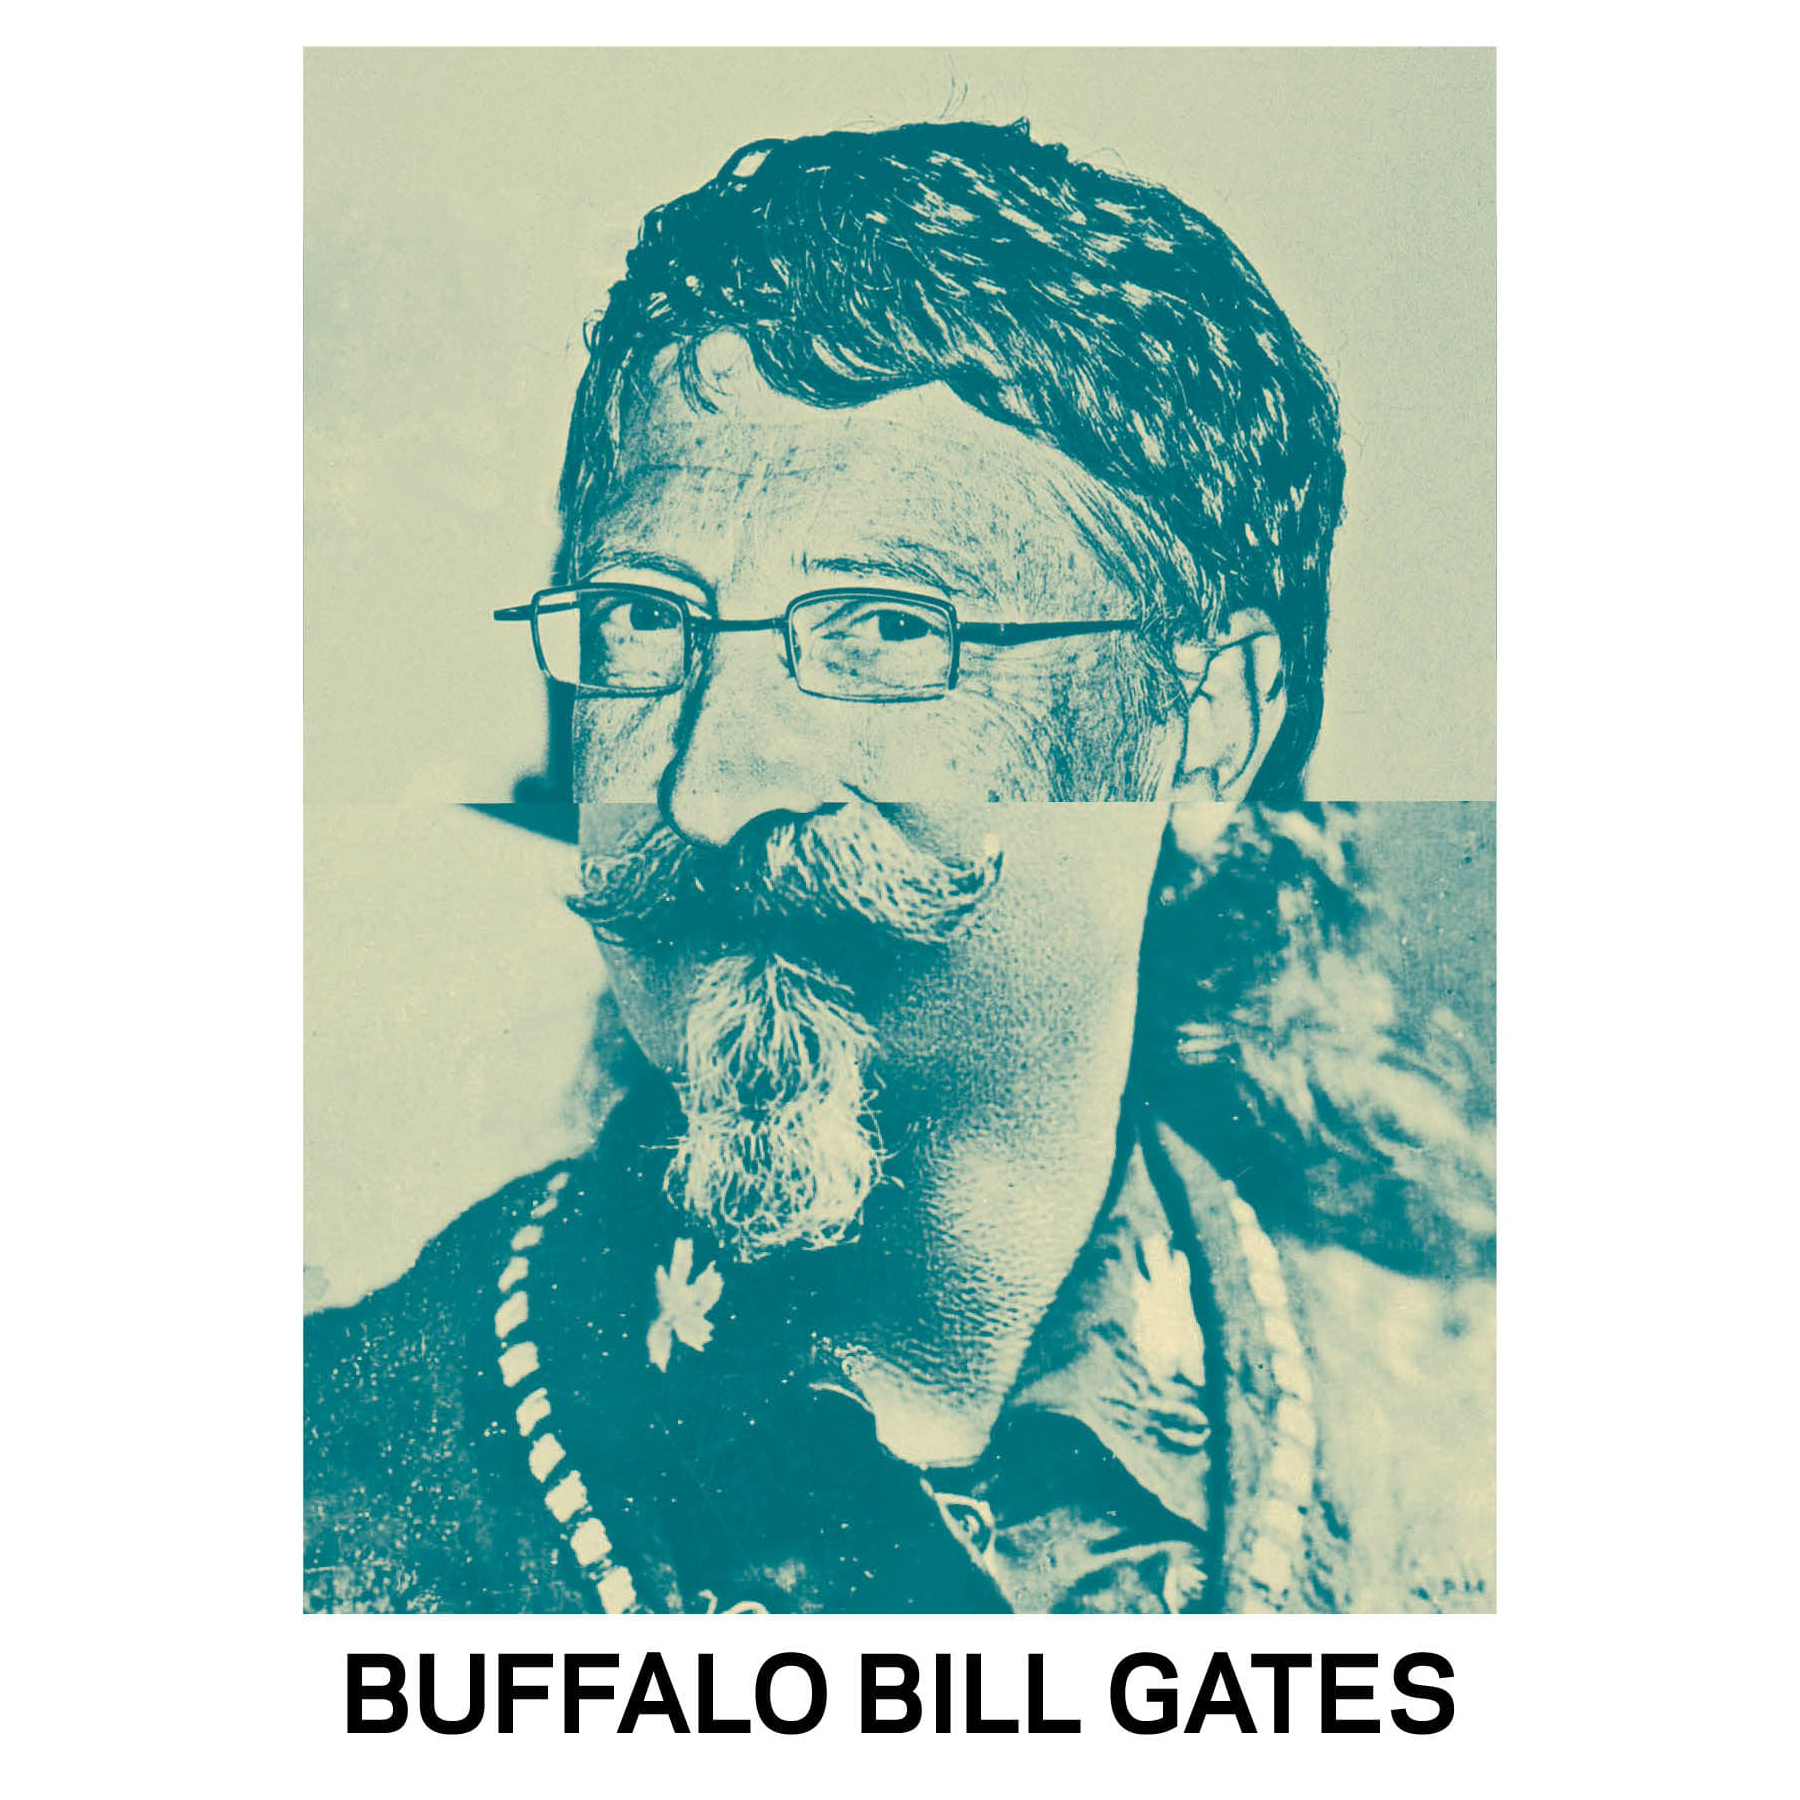 STUDIO KALLE MATTSSON 'BUFFALO BILL GATES' Mashup Art Print